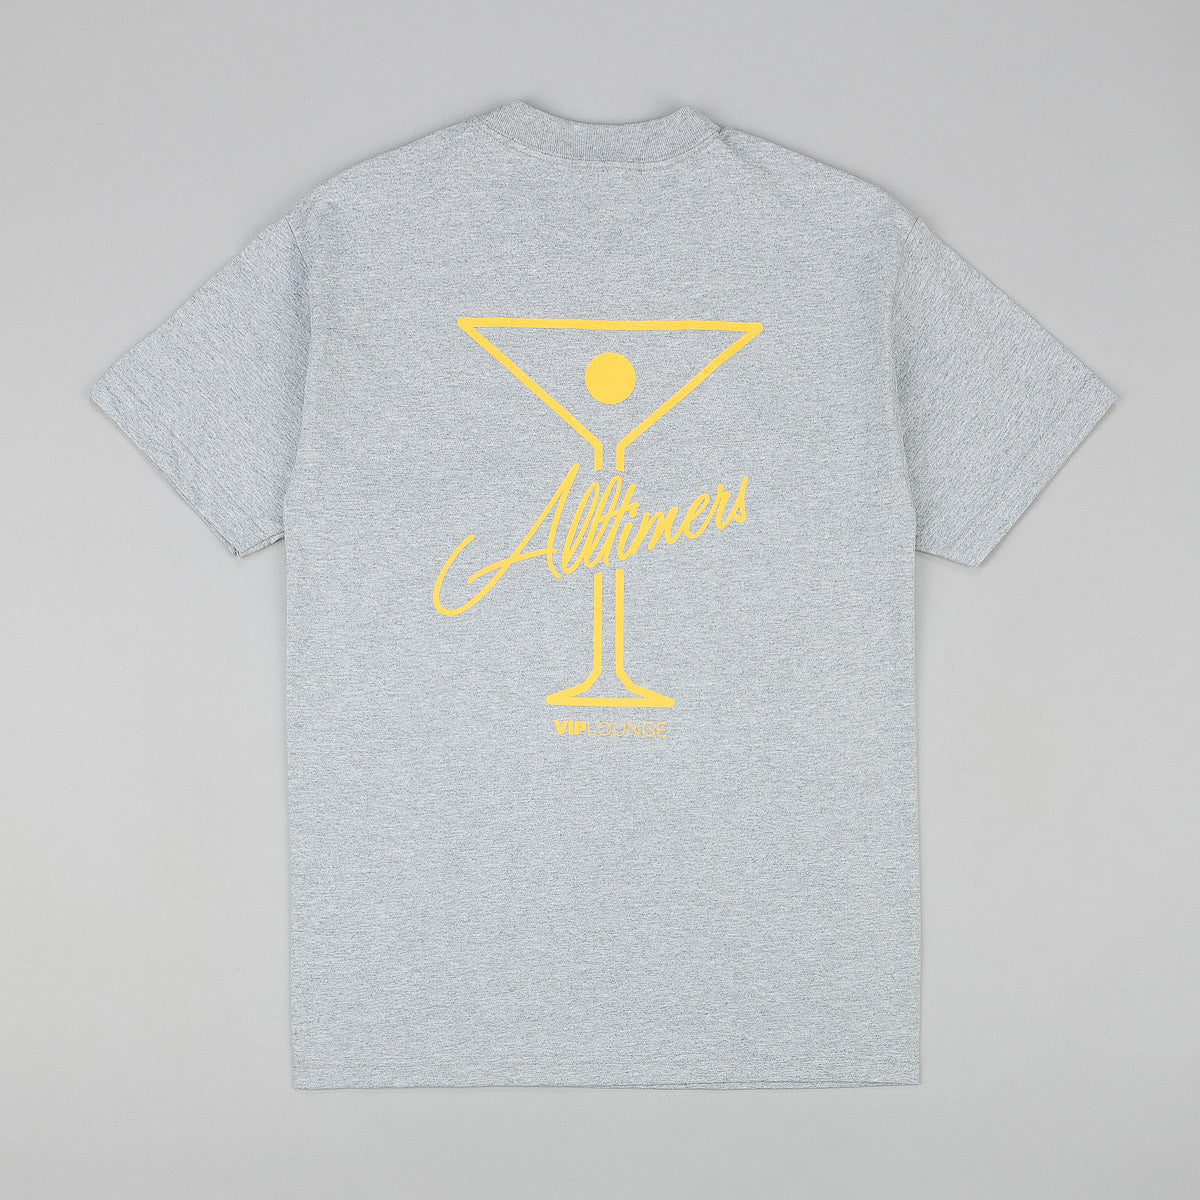 Alltimers League Player T-Shirt - Grey Heather